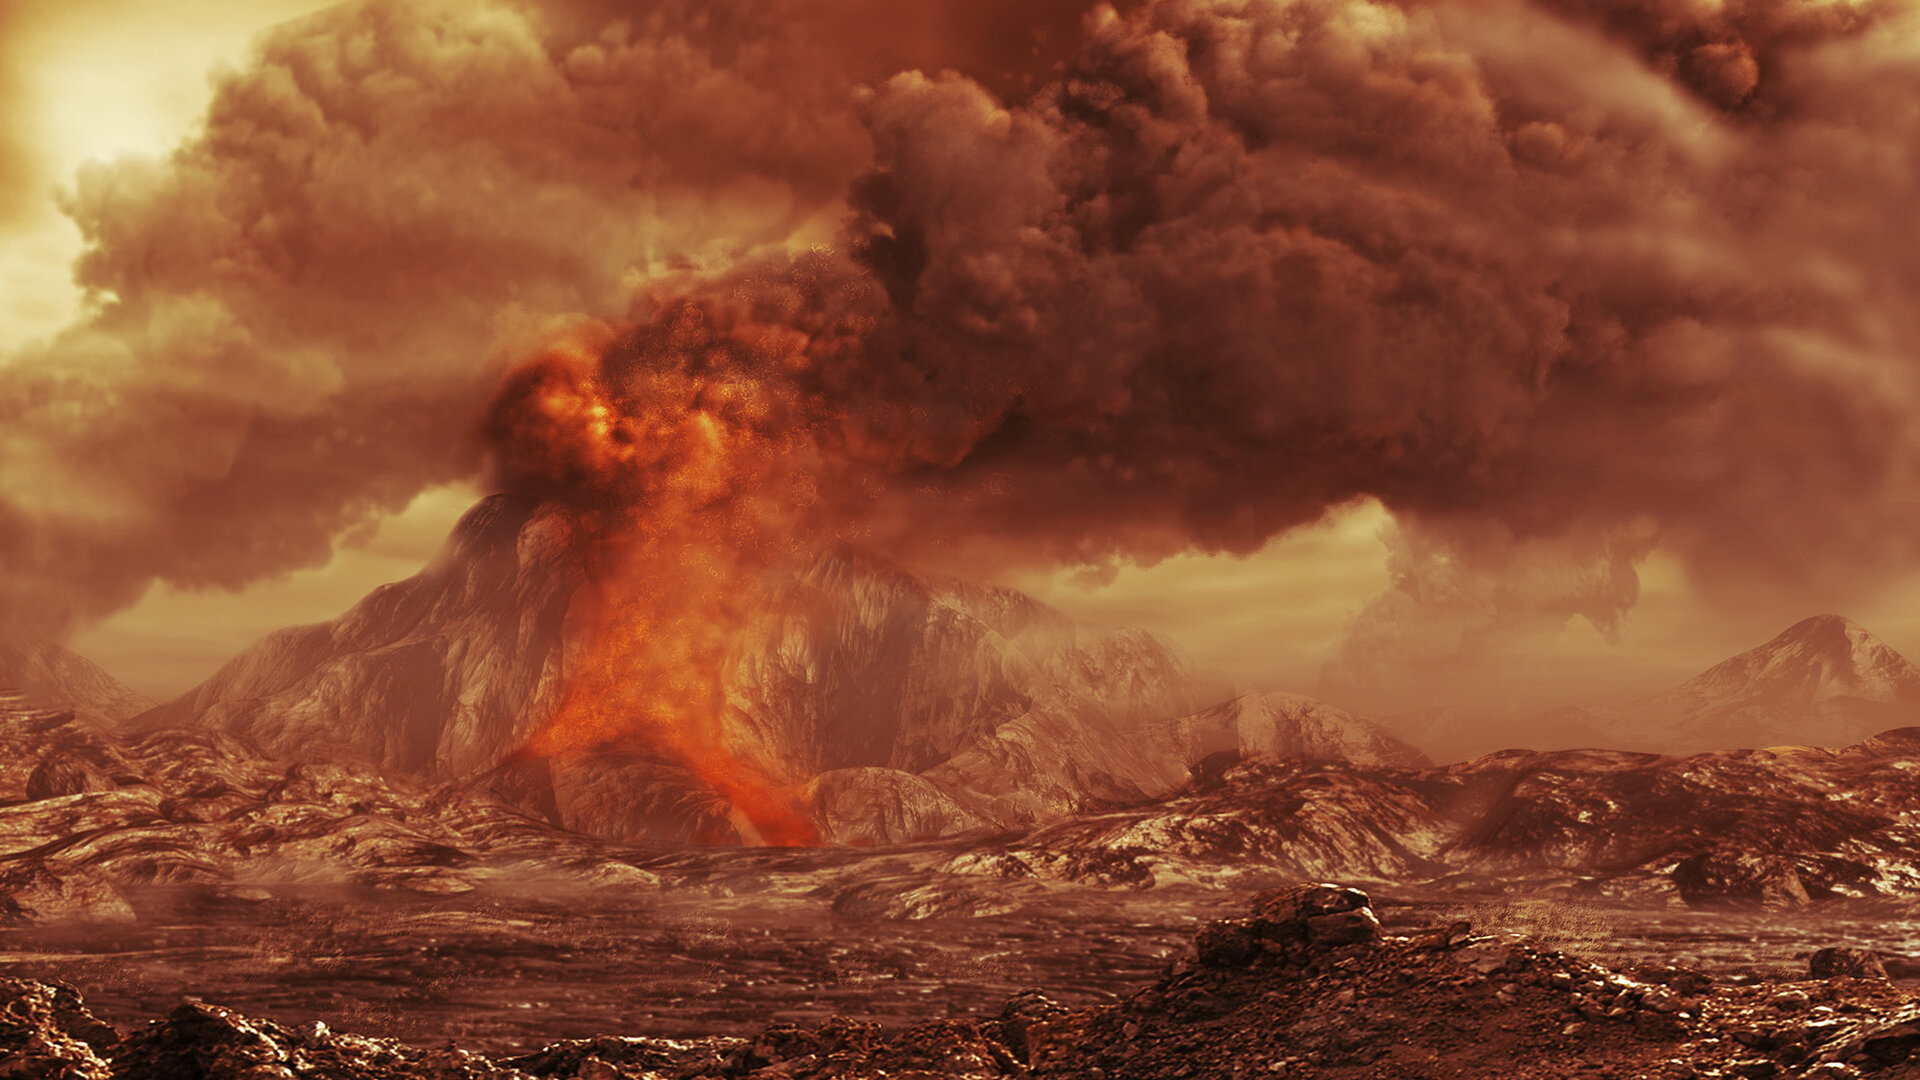 Is Venus volcanically active?